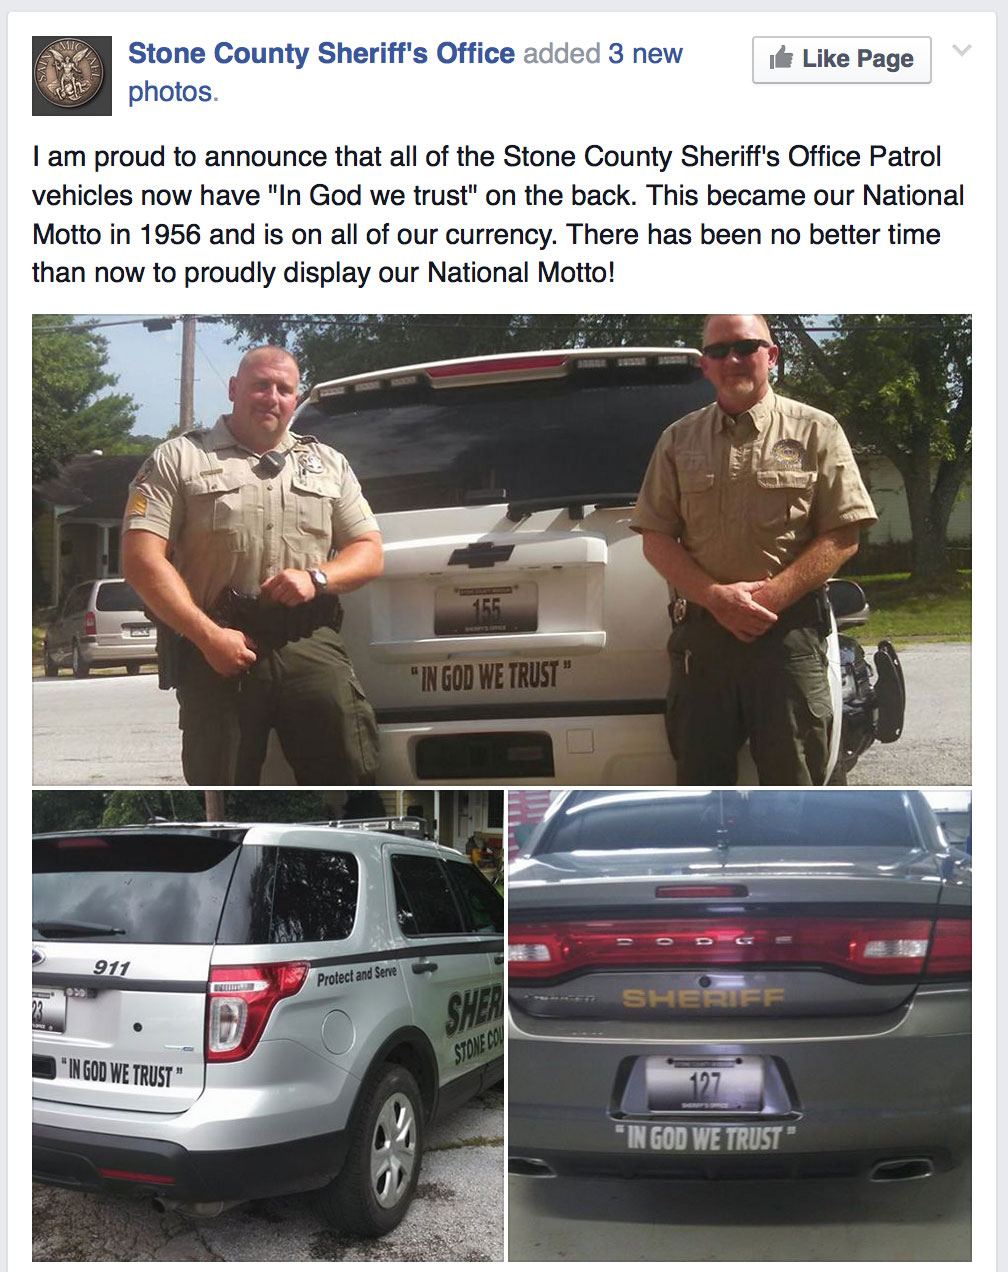 in_god_we_trust_stone_county_sheriff